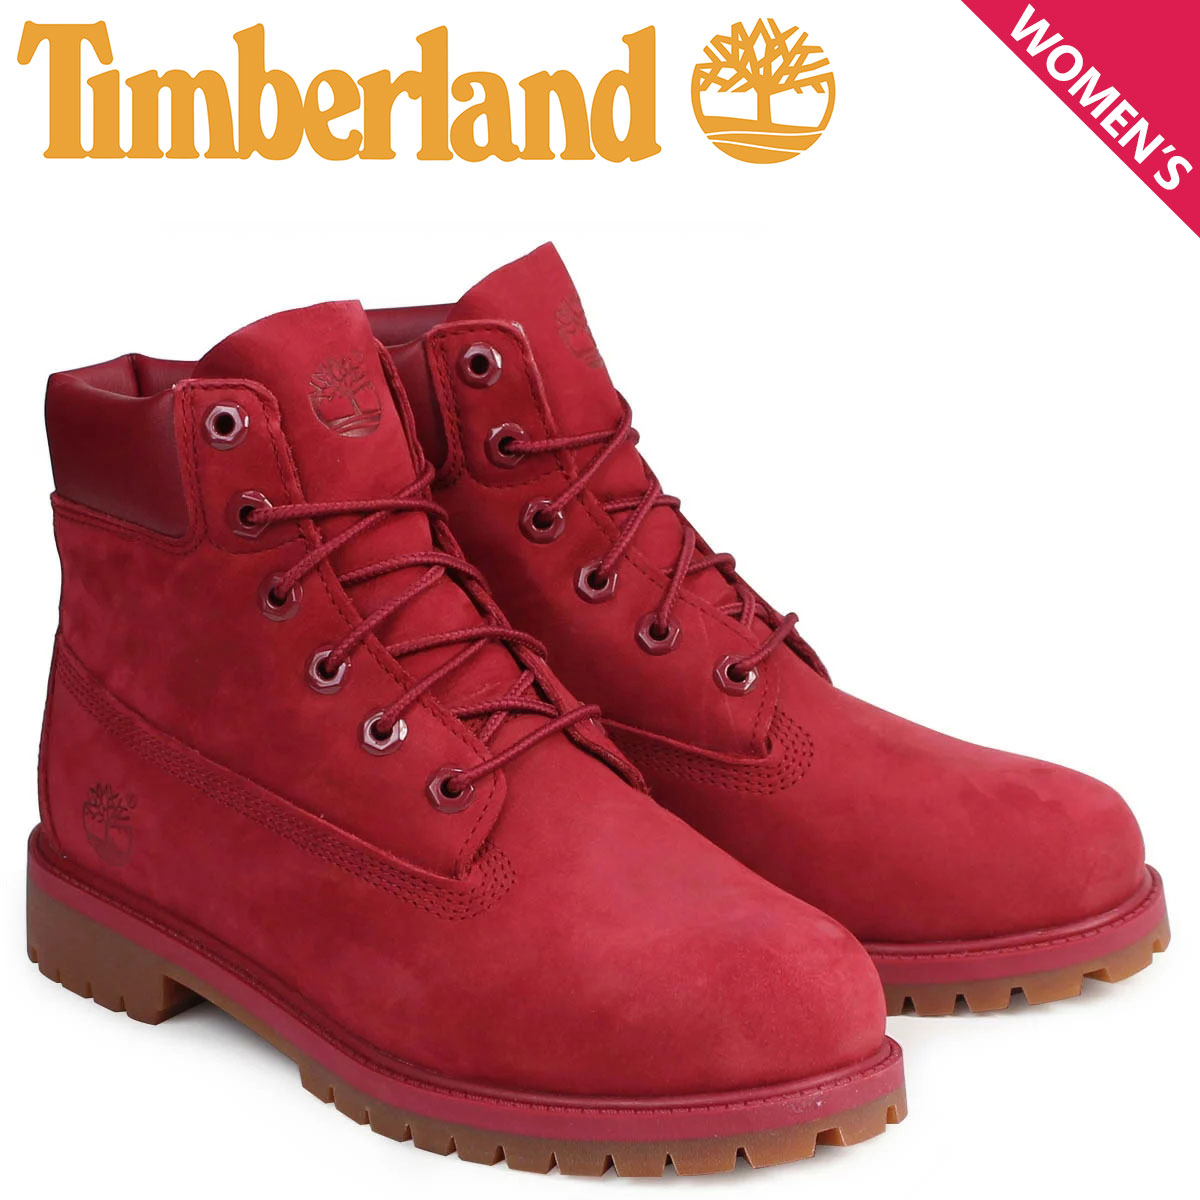 mens 6 inch timberland boots red